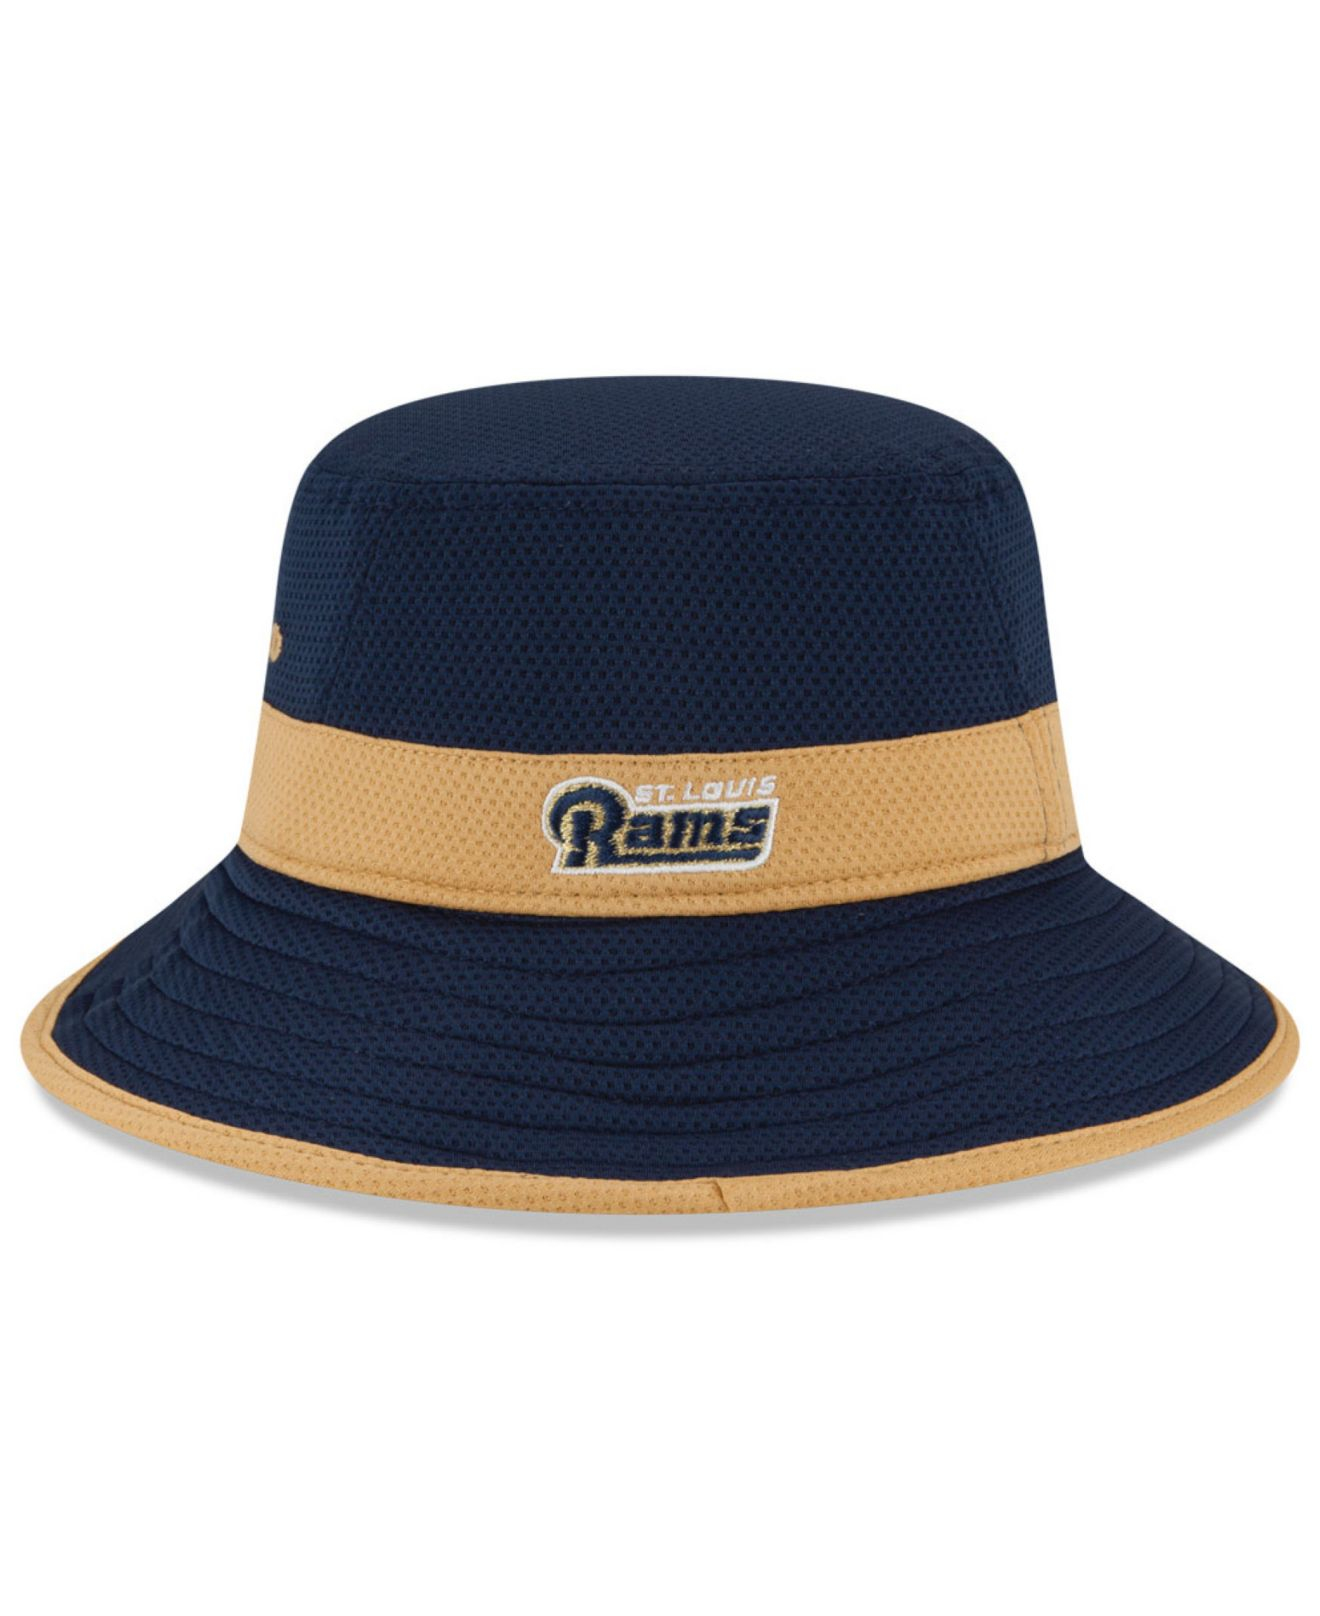 Lyst - KTZ St. Louis Rams Training Camp Reverse Bucket Hat in Blue ... 8a27692771b